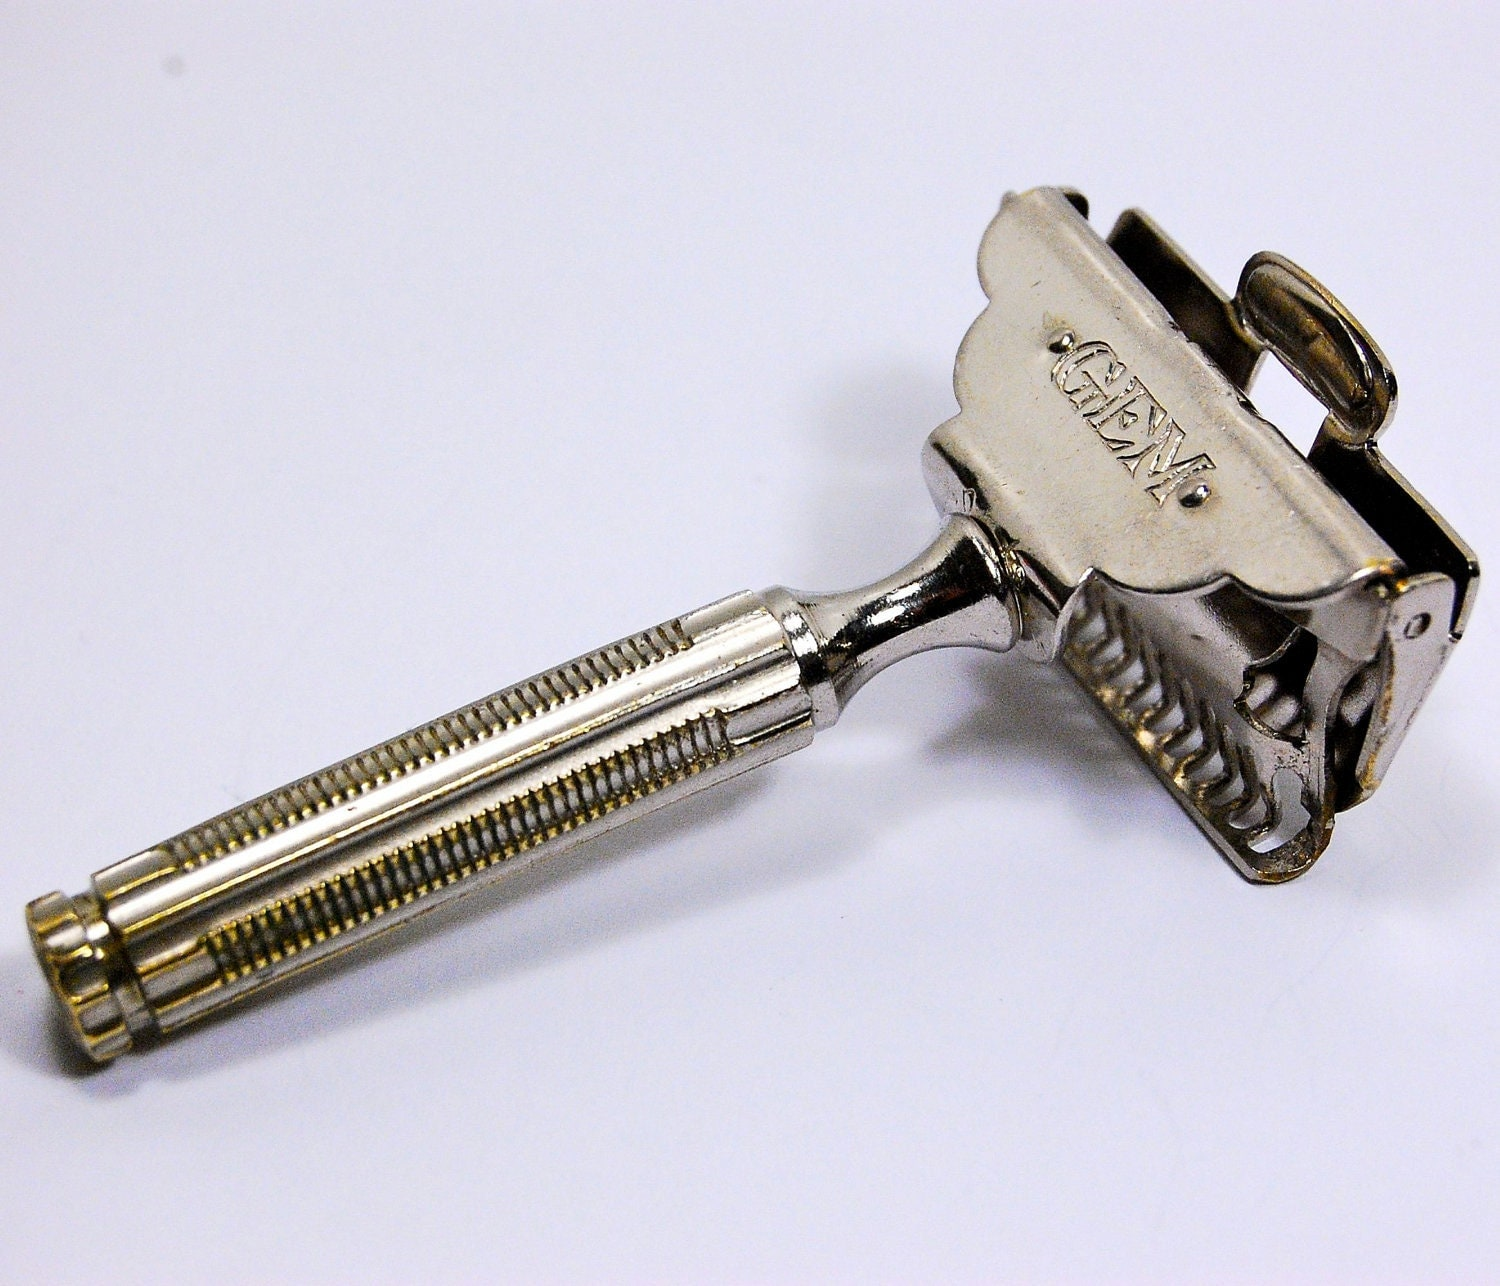 gem 1912 safety razor